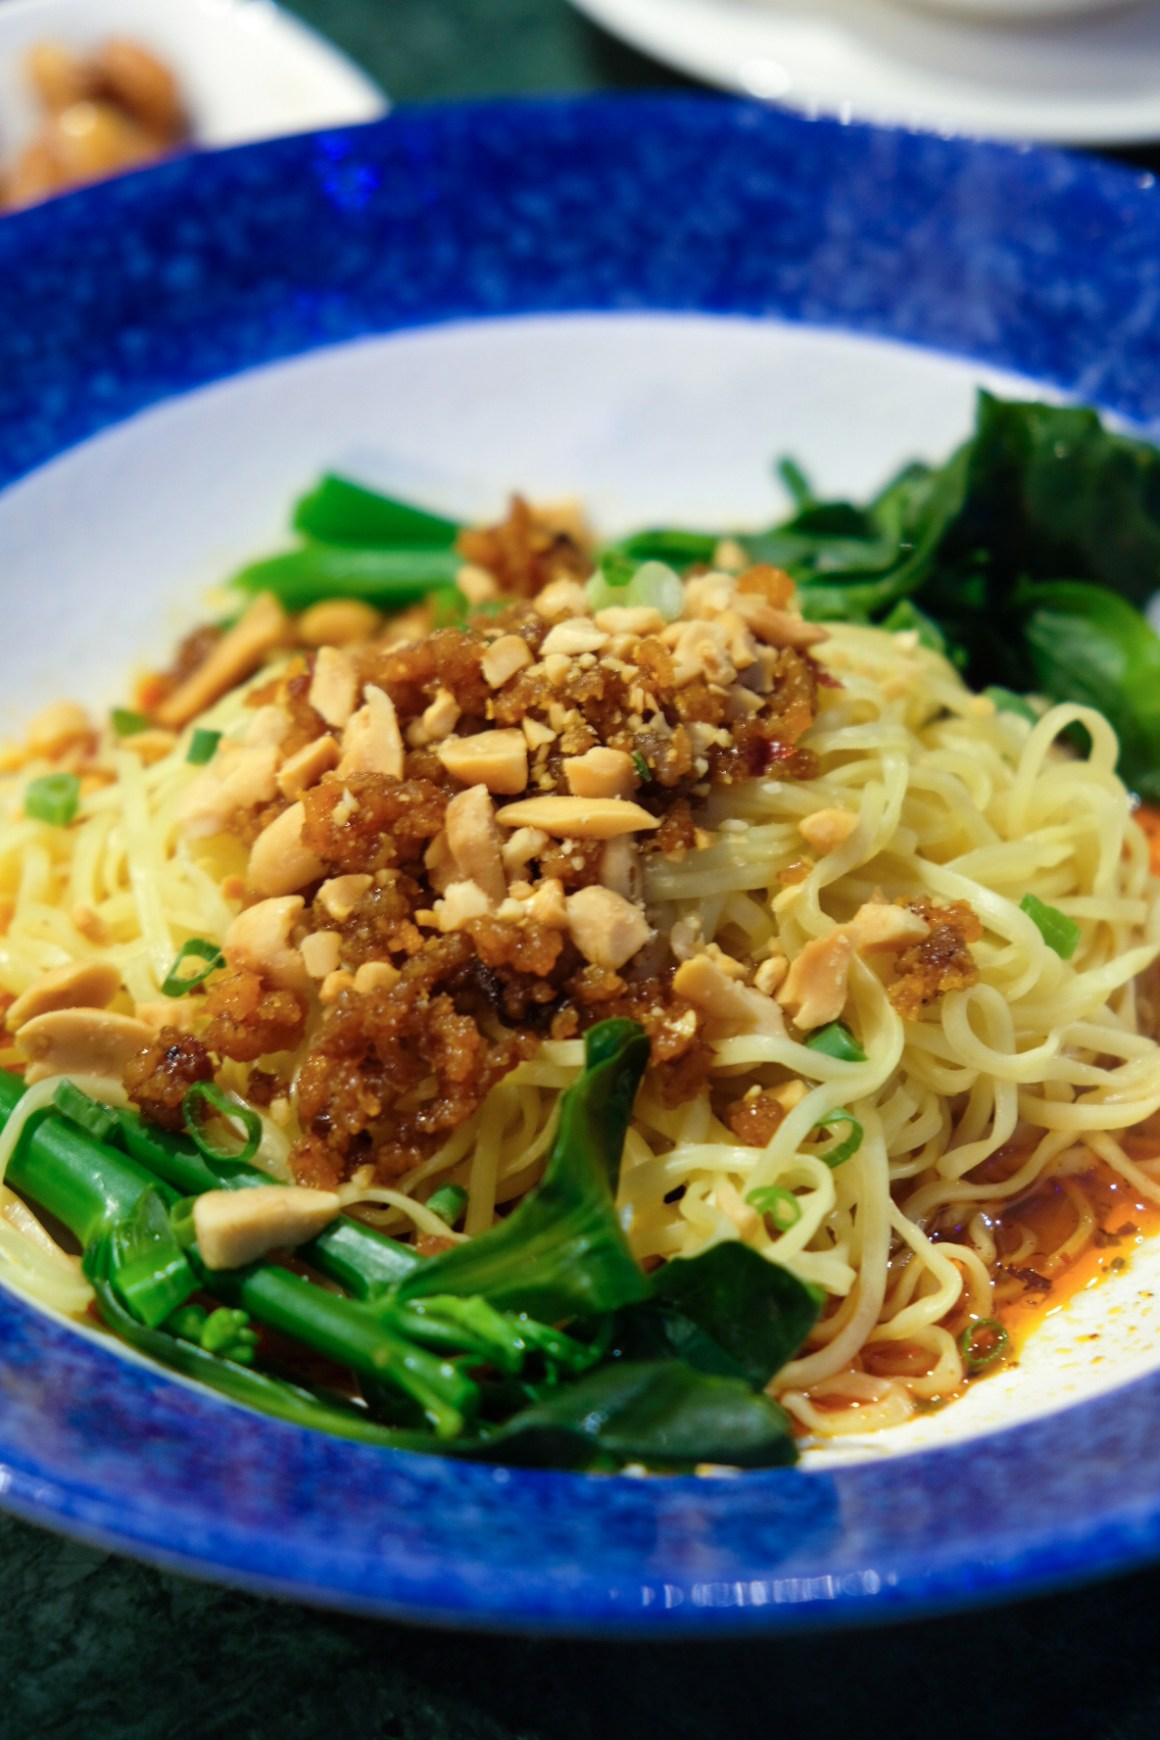 Chengdu Homemade Dan Dan Noodle with Minced Pork